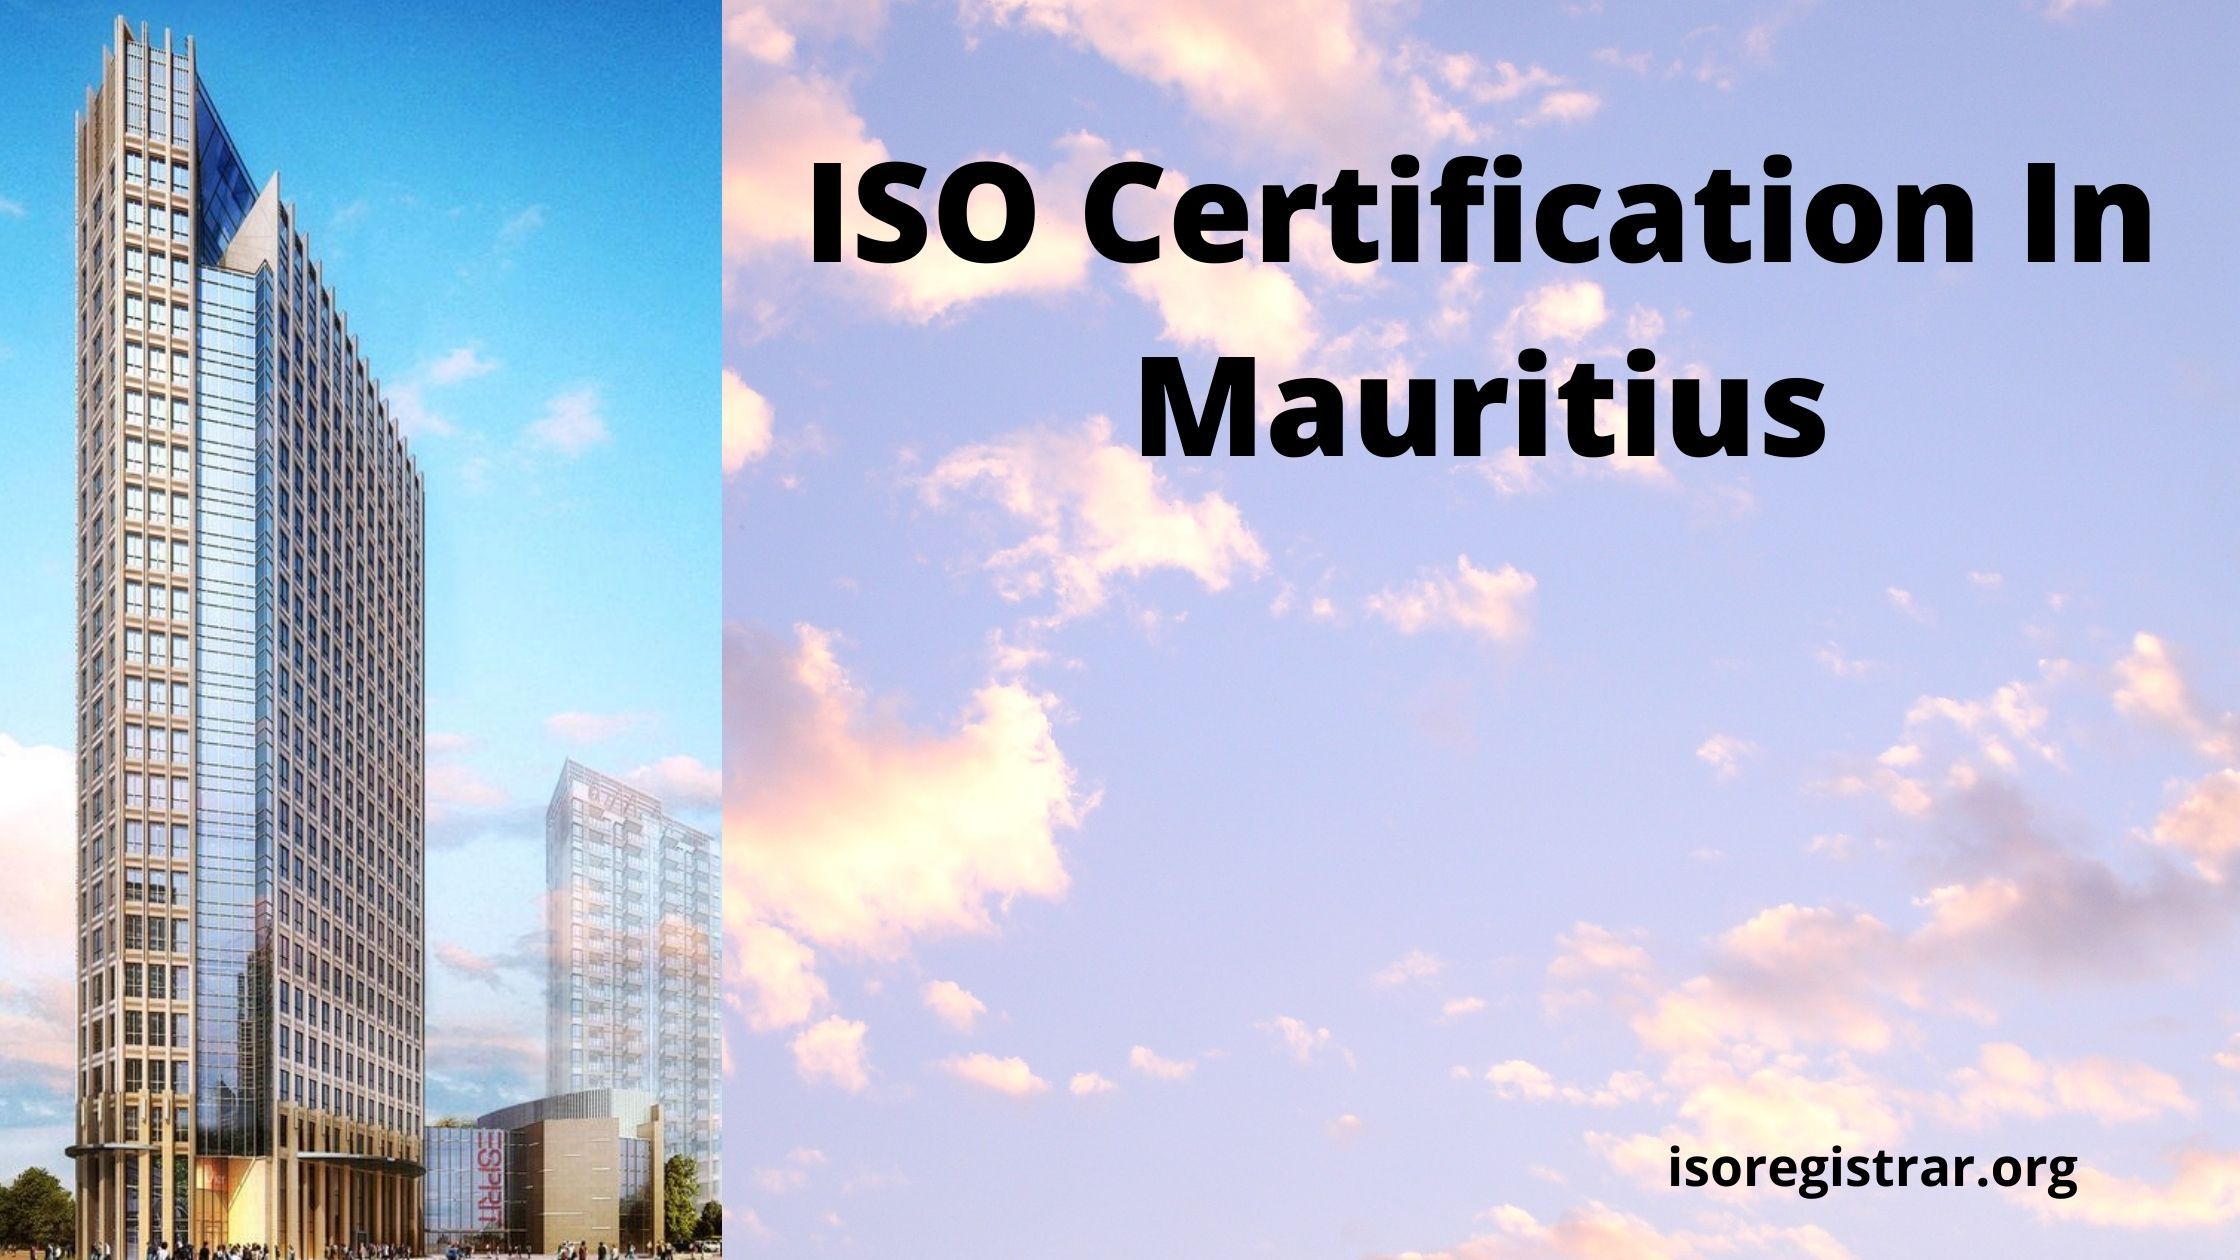 ISO Certification In Mauritius